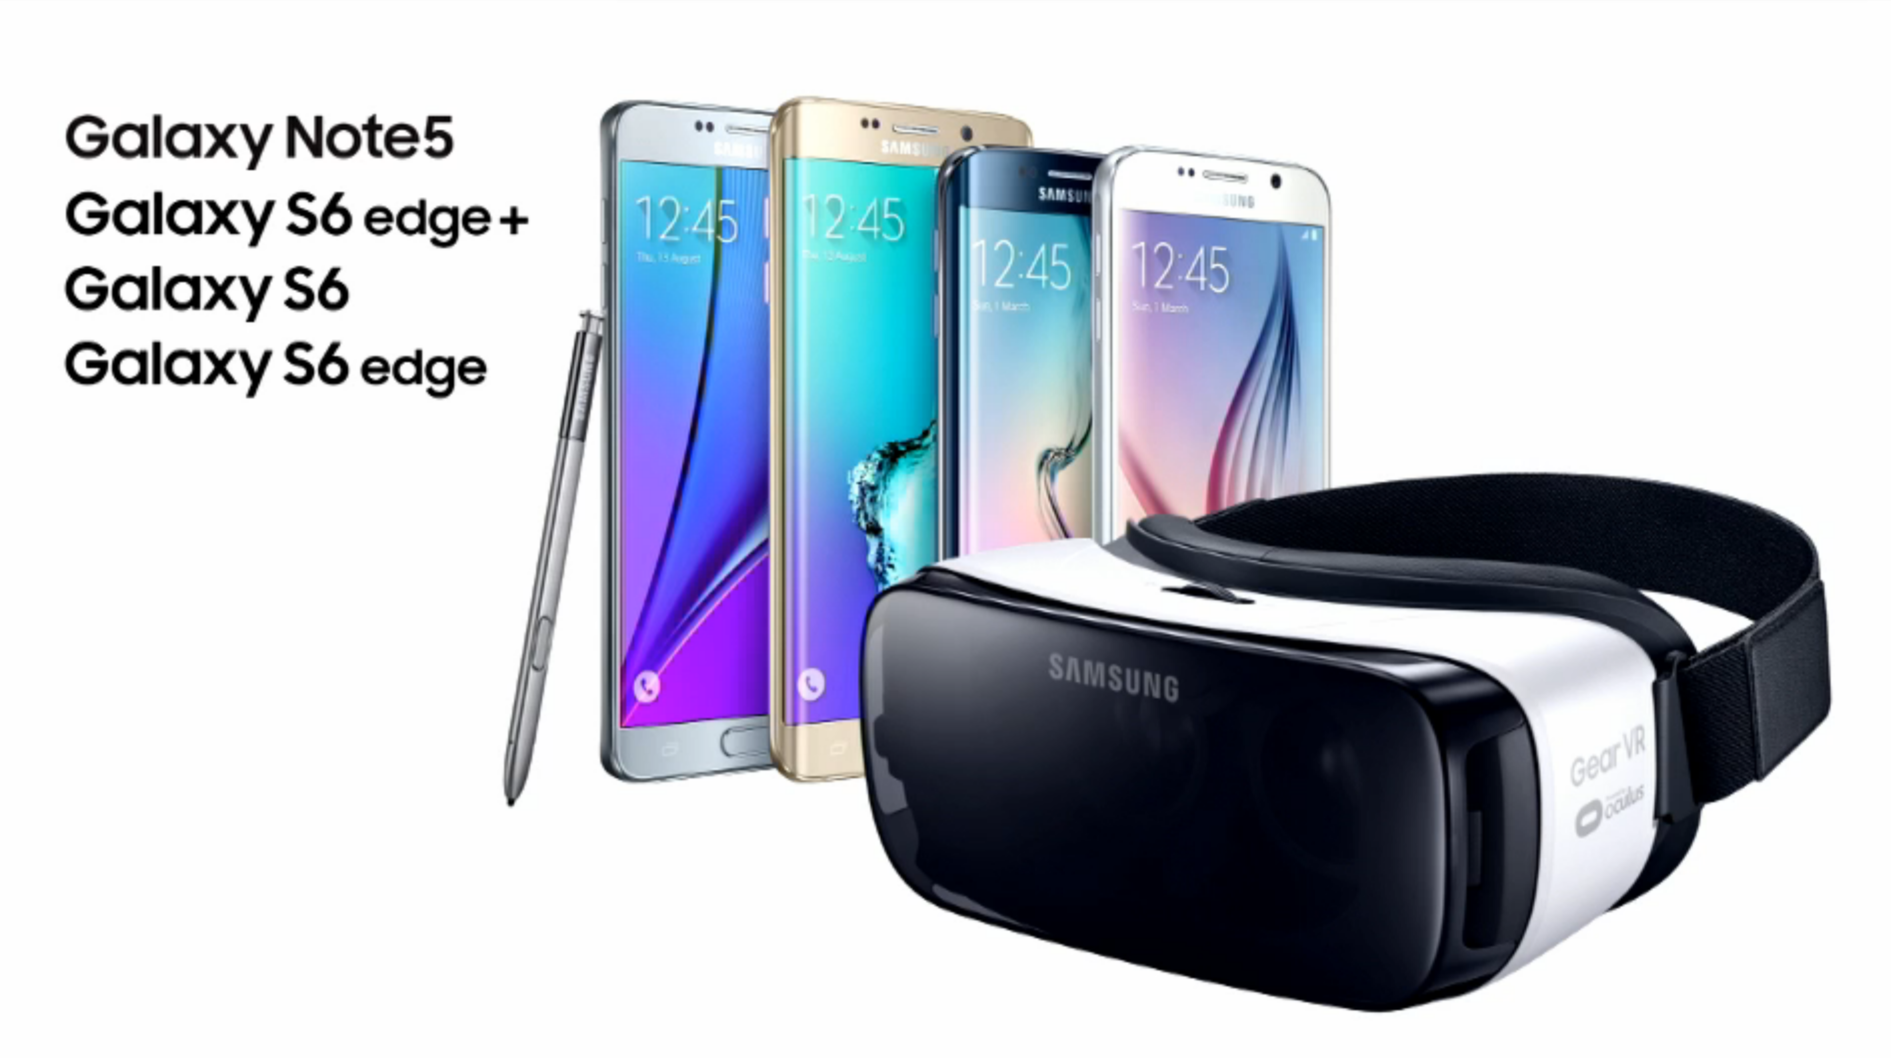 Samsung's new Gear VR virtual reality headset only costs $99 | PCWorld